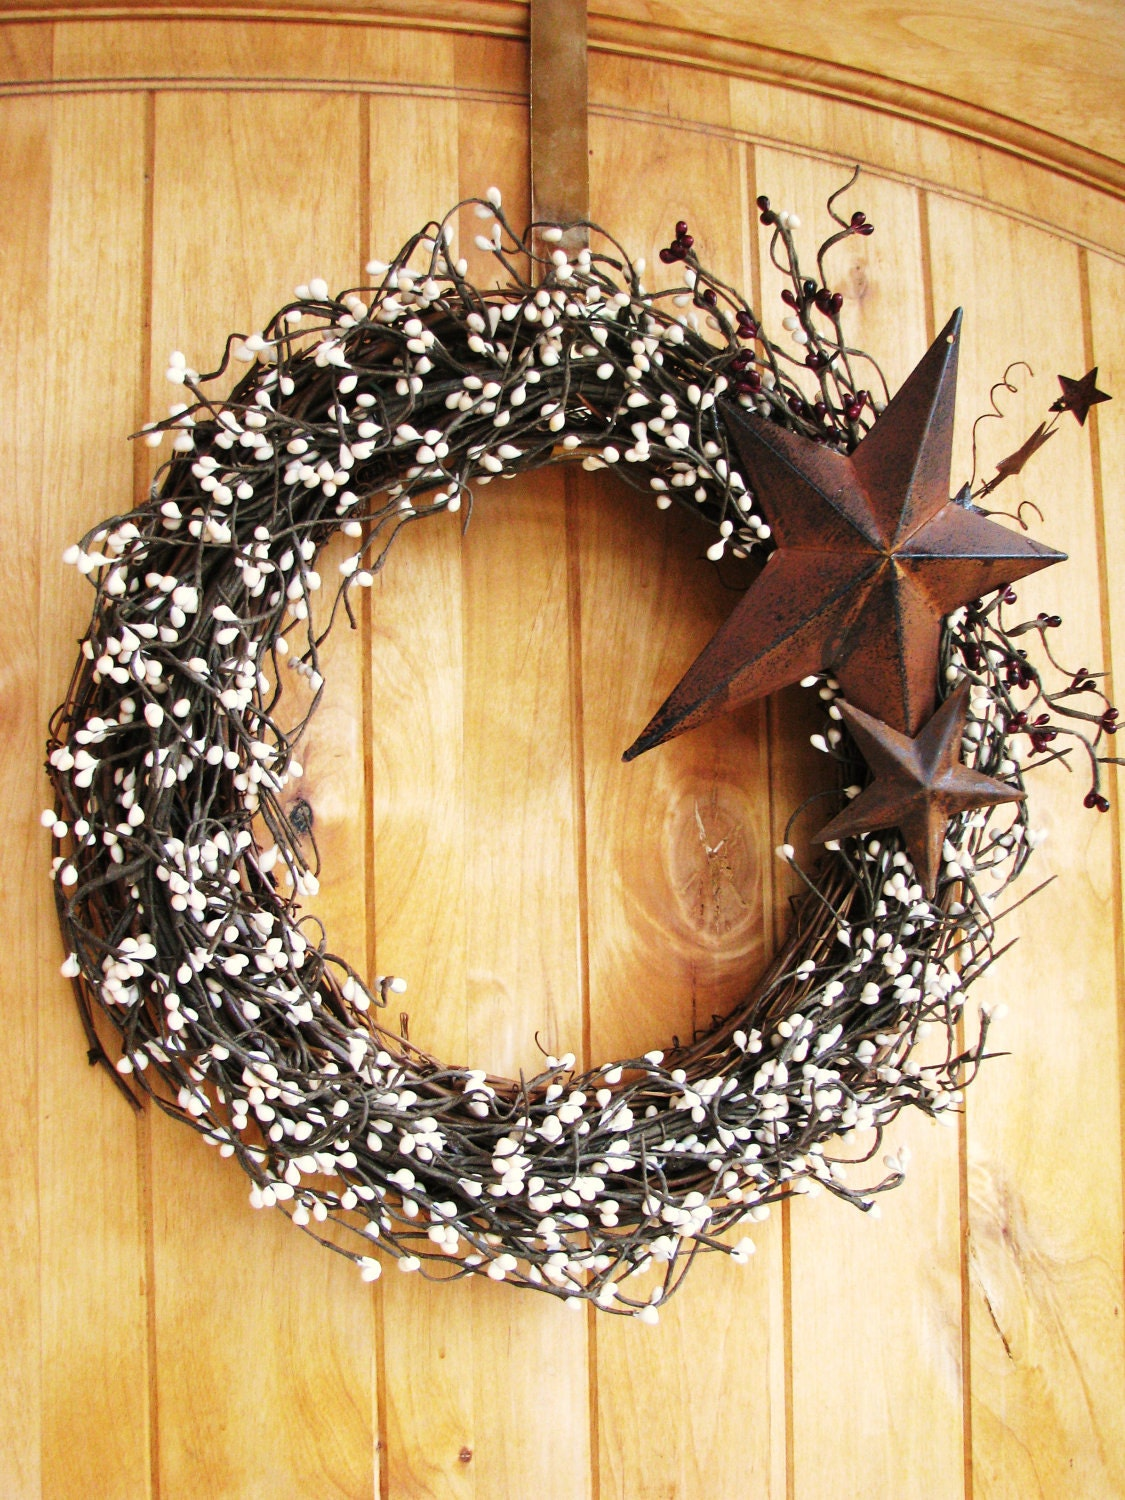 Rustic Country Primitve Star Wreath Creamy By Wildridgedesign